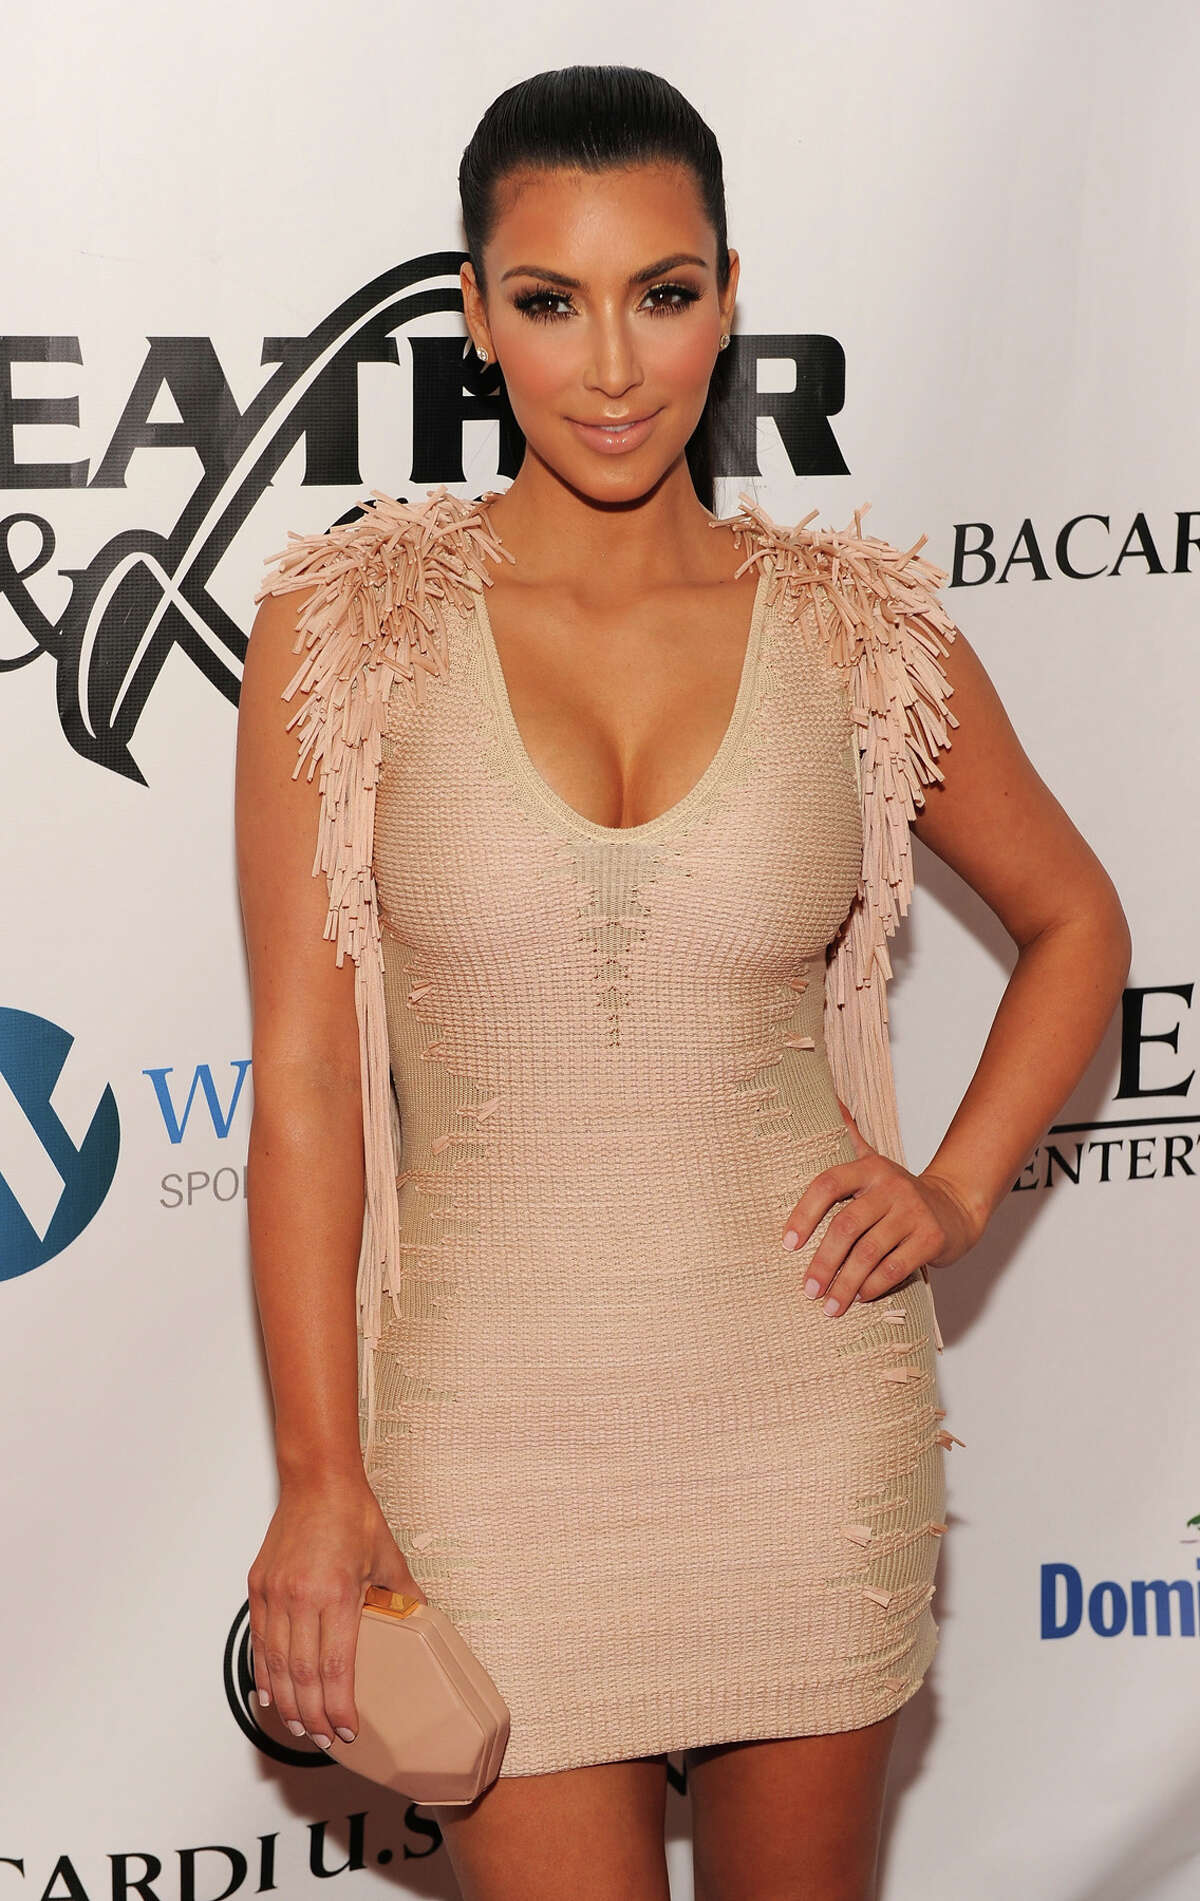 TV personality Kim Kardashian attends the Leather & Laces Super Bowl Party presented by Dominican Republic Ministry of Tourism at the Paris Theater on February 5, 2010 in Miami Beach, Florida. (Photo by Dimitrios Kambouris/Getty Images for Leather & Laces)